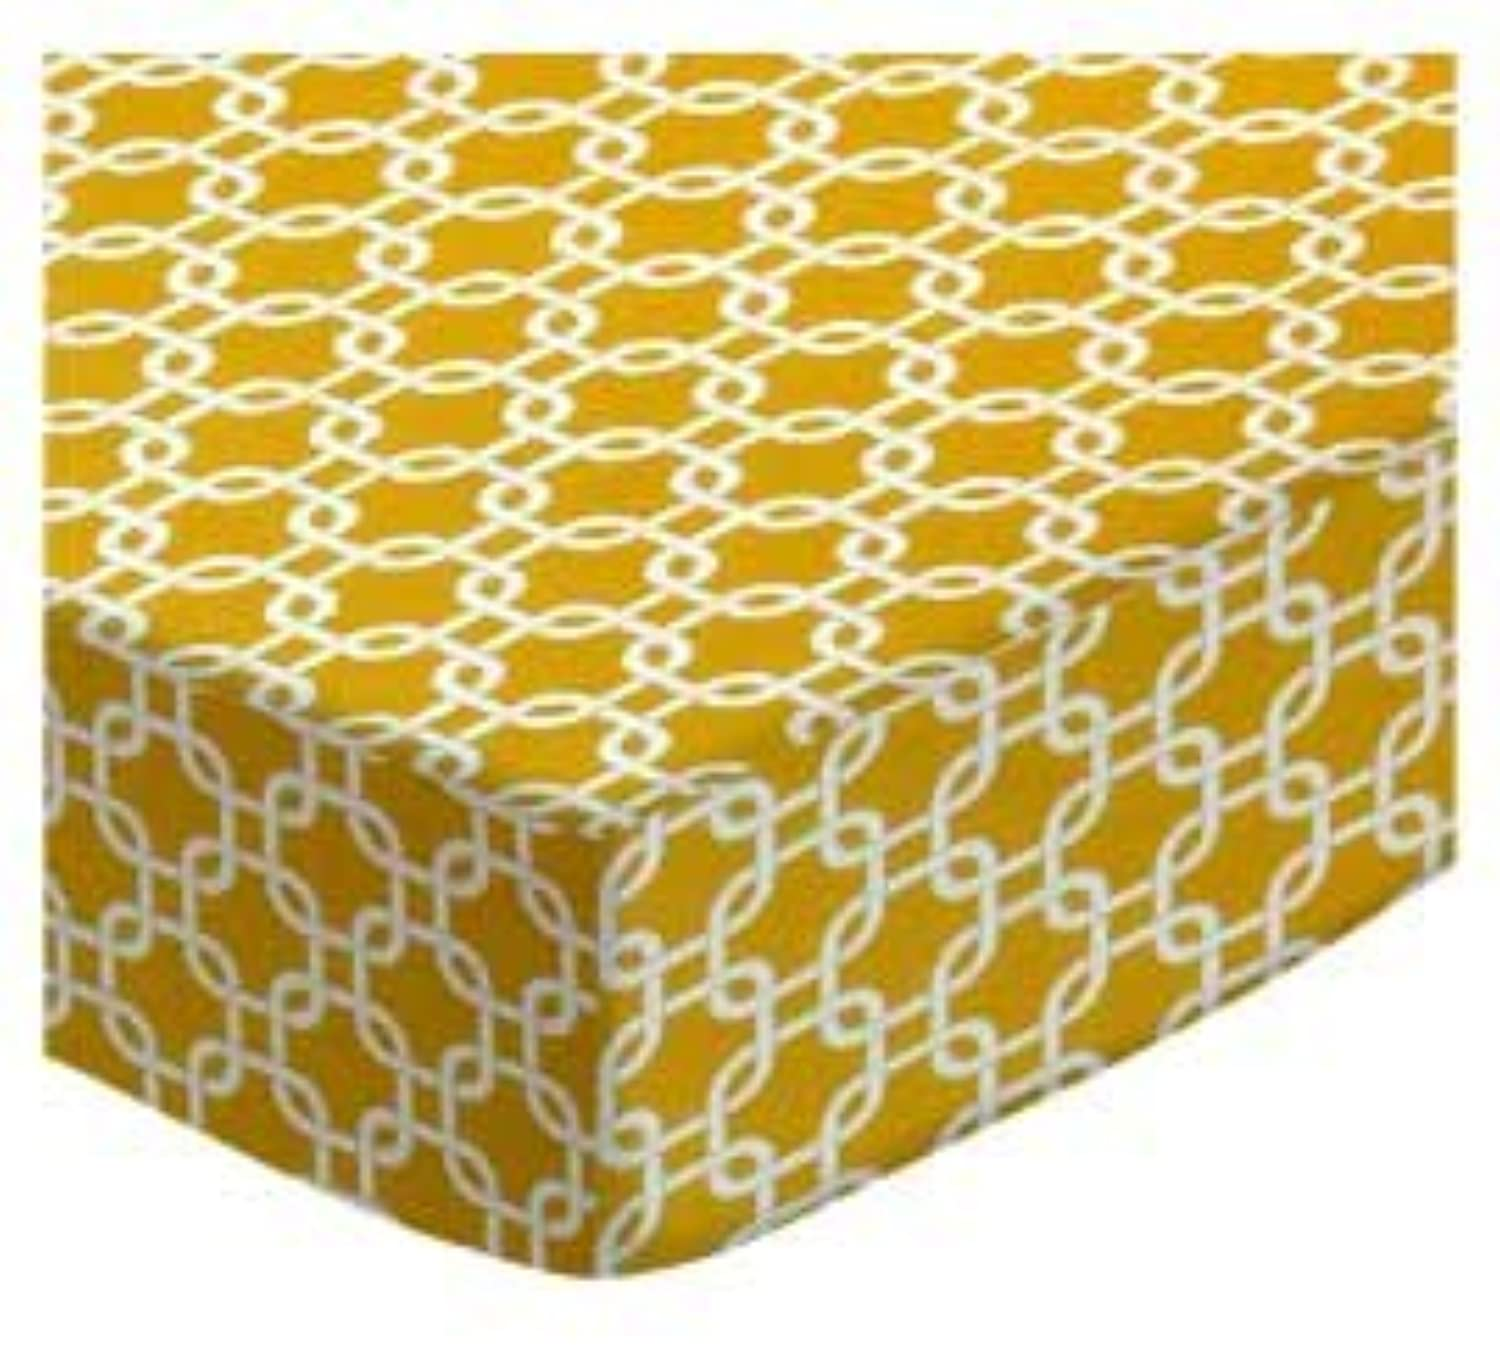 SheetWorld Fitted Cradle Sheet - Mustard Yellow Links - Made In USA by sheetworld